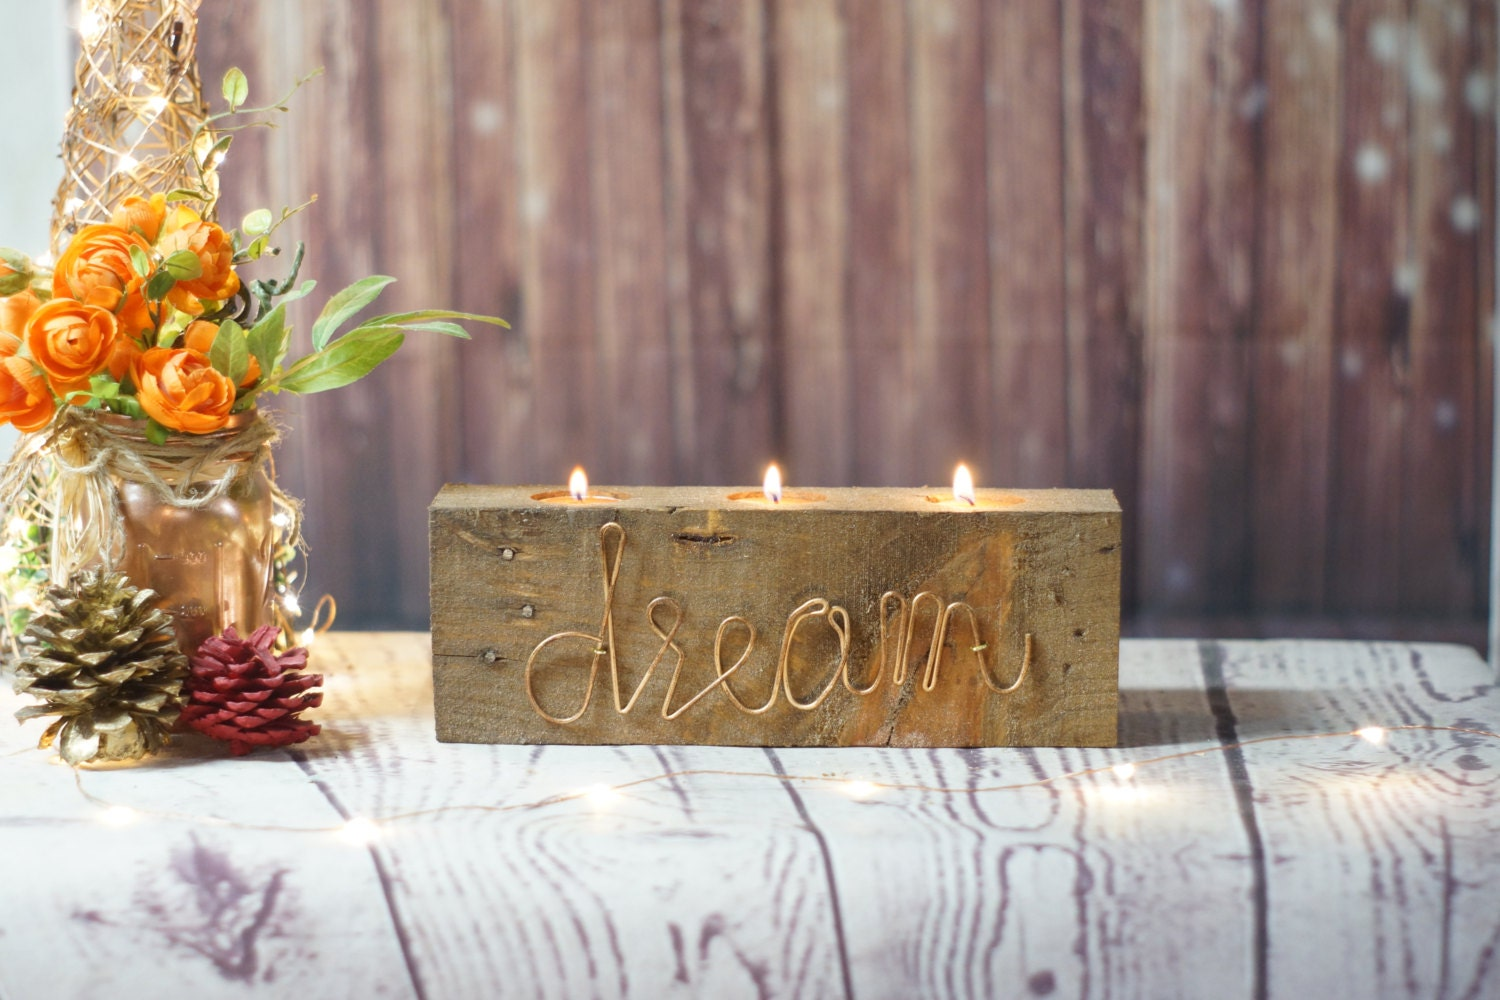 Dream Reclaimed Wood Candle Holder Modern Farmhouse Modern Rustic Decor Rustic Home Decor Rustic Accents Minimal Boho Fall Decor